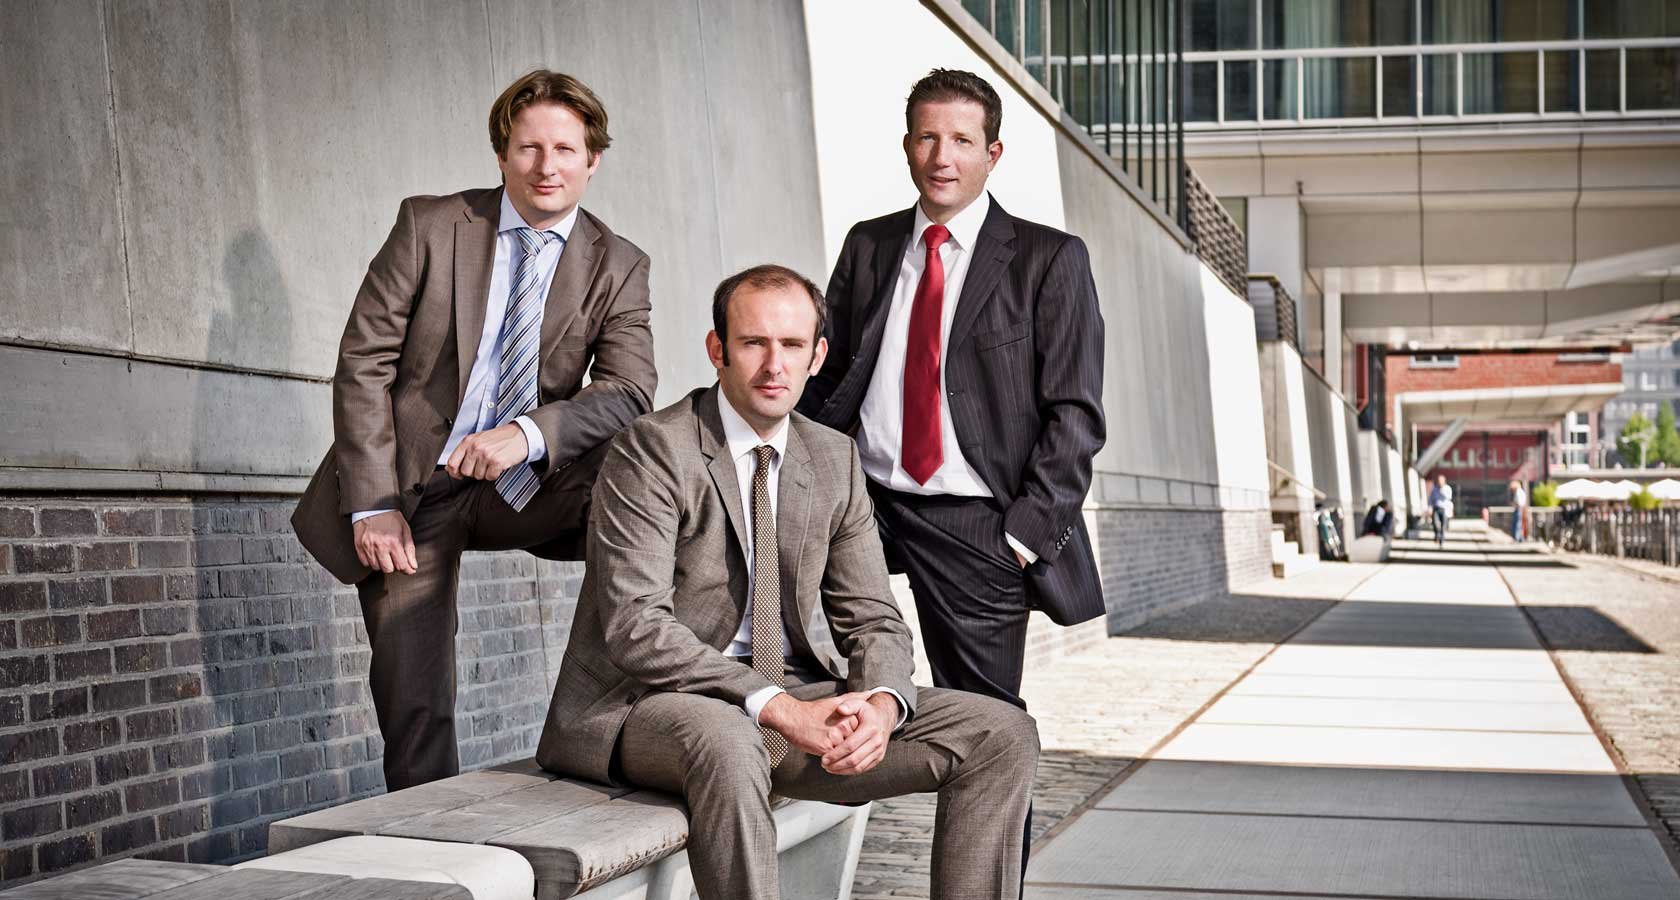 Businessportraits, Businessfotografie - Gruppenaufnahme